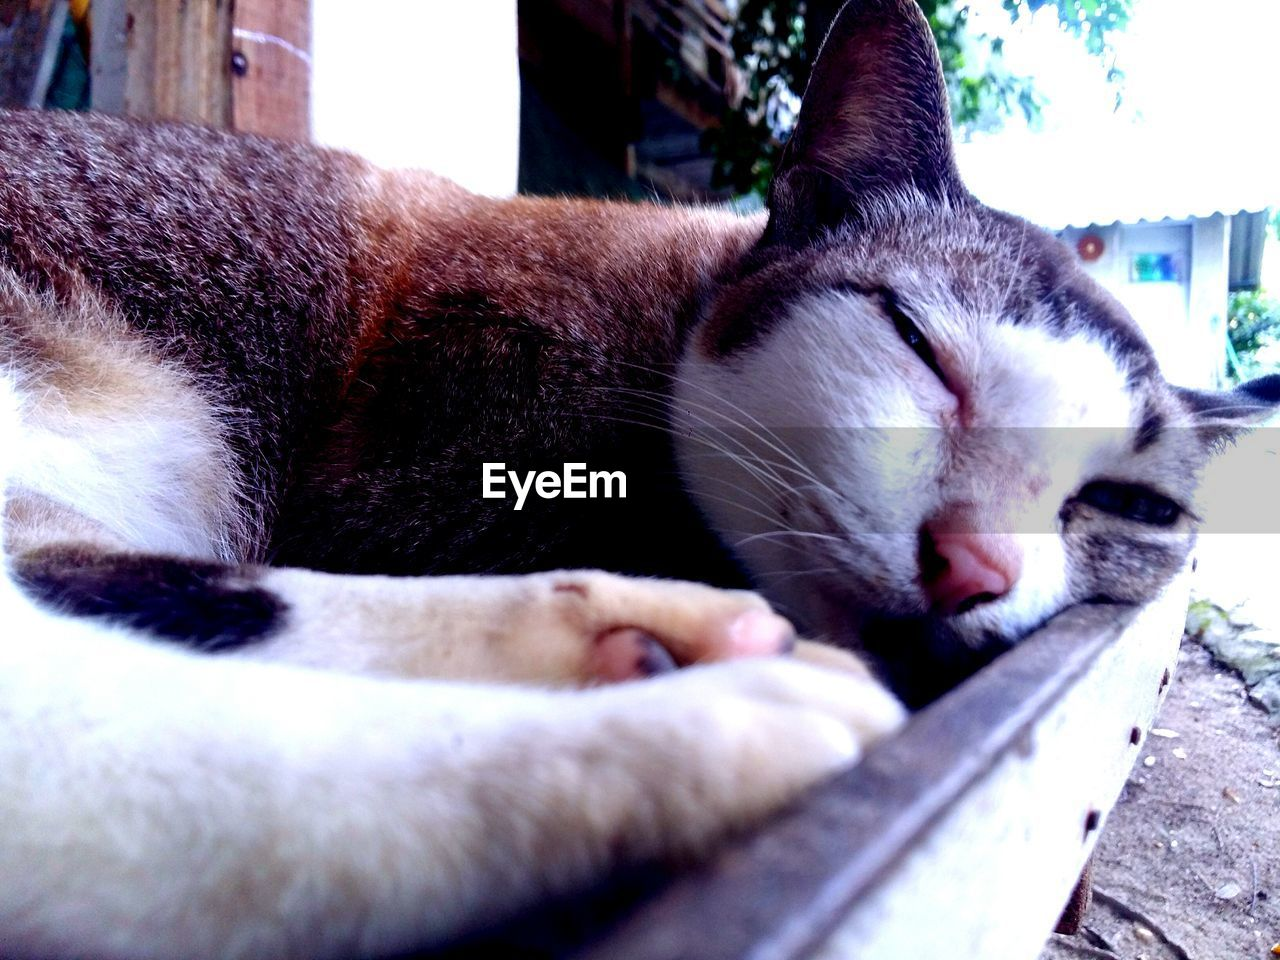 mammal, domestic, animal themes, pets, animal, cat, feline, domestic animals, domestic cat, one animal, vertebrate, relaxation, sleeping, eyes closed, no people, close-up, resting, lying down, whisker, animal body part, animal head, napping